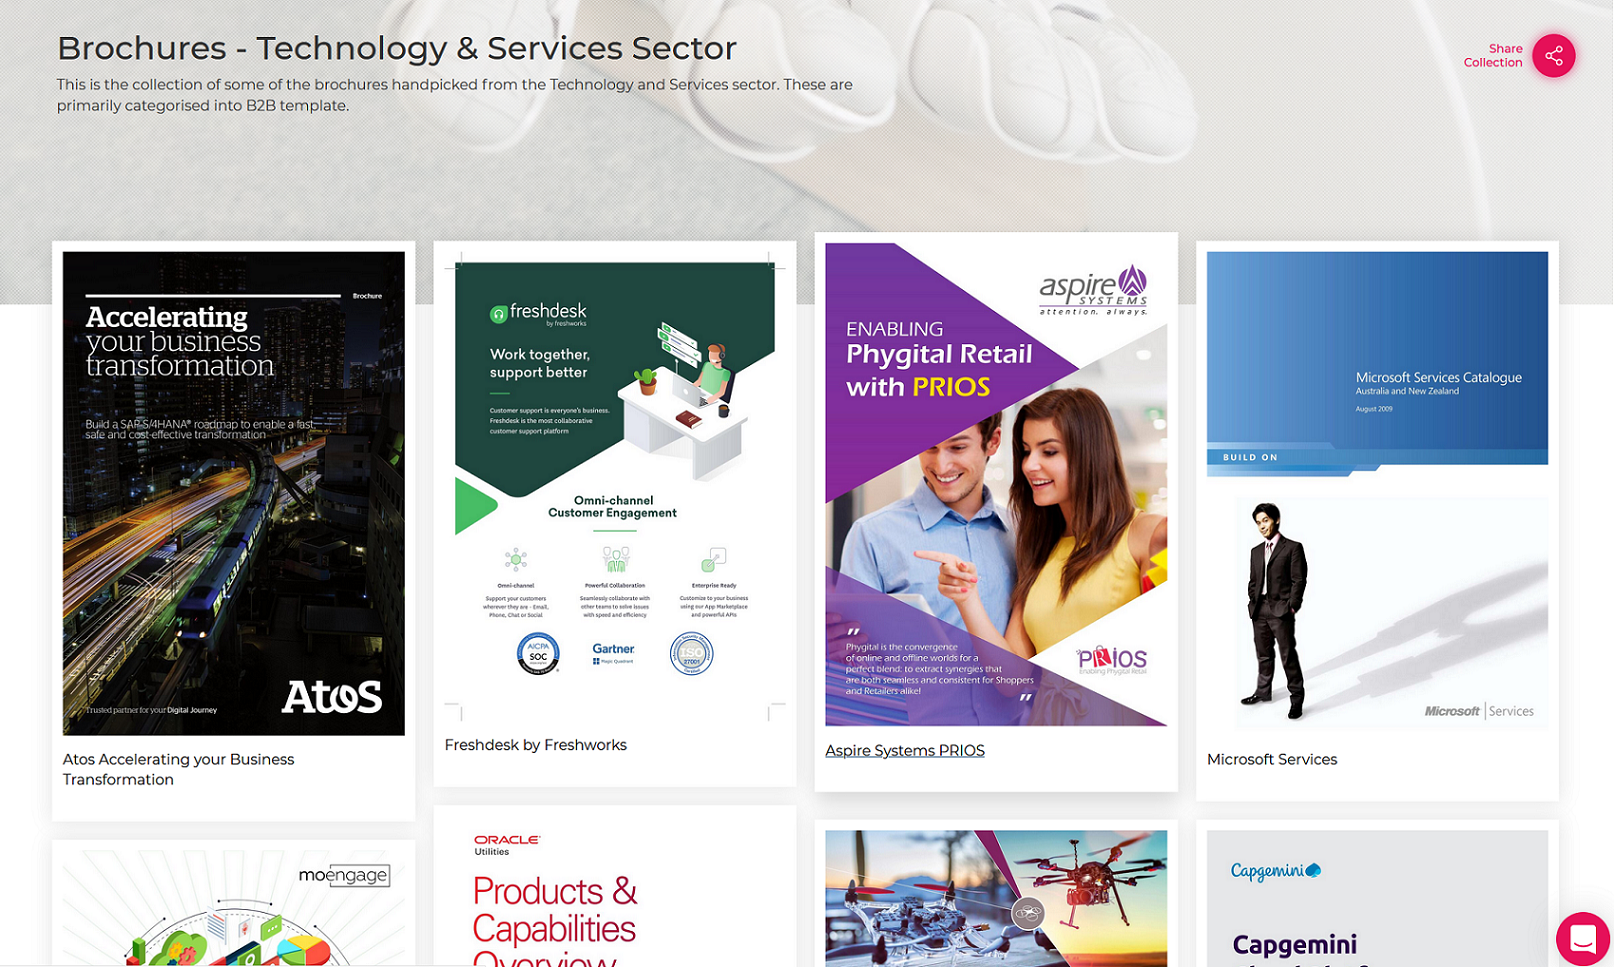 Brochures-Technology & Services